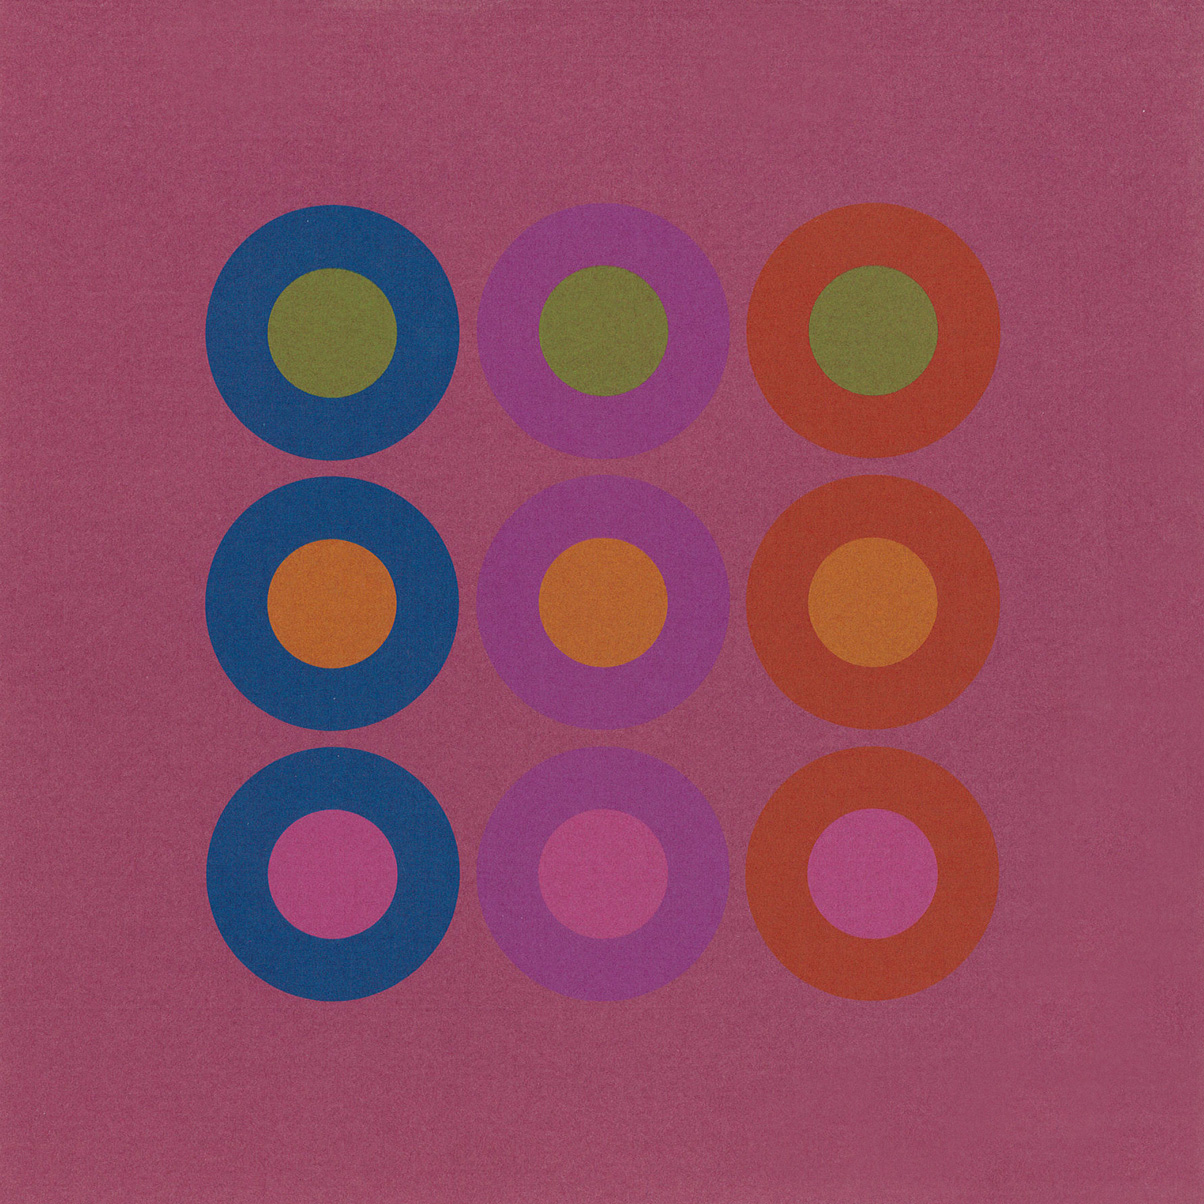 Sheet from Strathmore on Opaques mailer (Strathmore Paper Co., 1970). Design by Richard Danne. Photograph by Ariel Smullen.